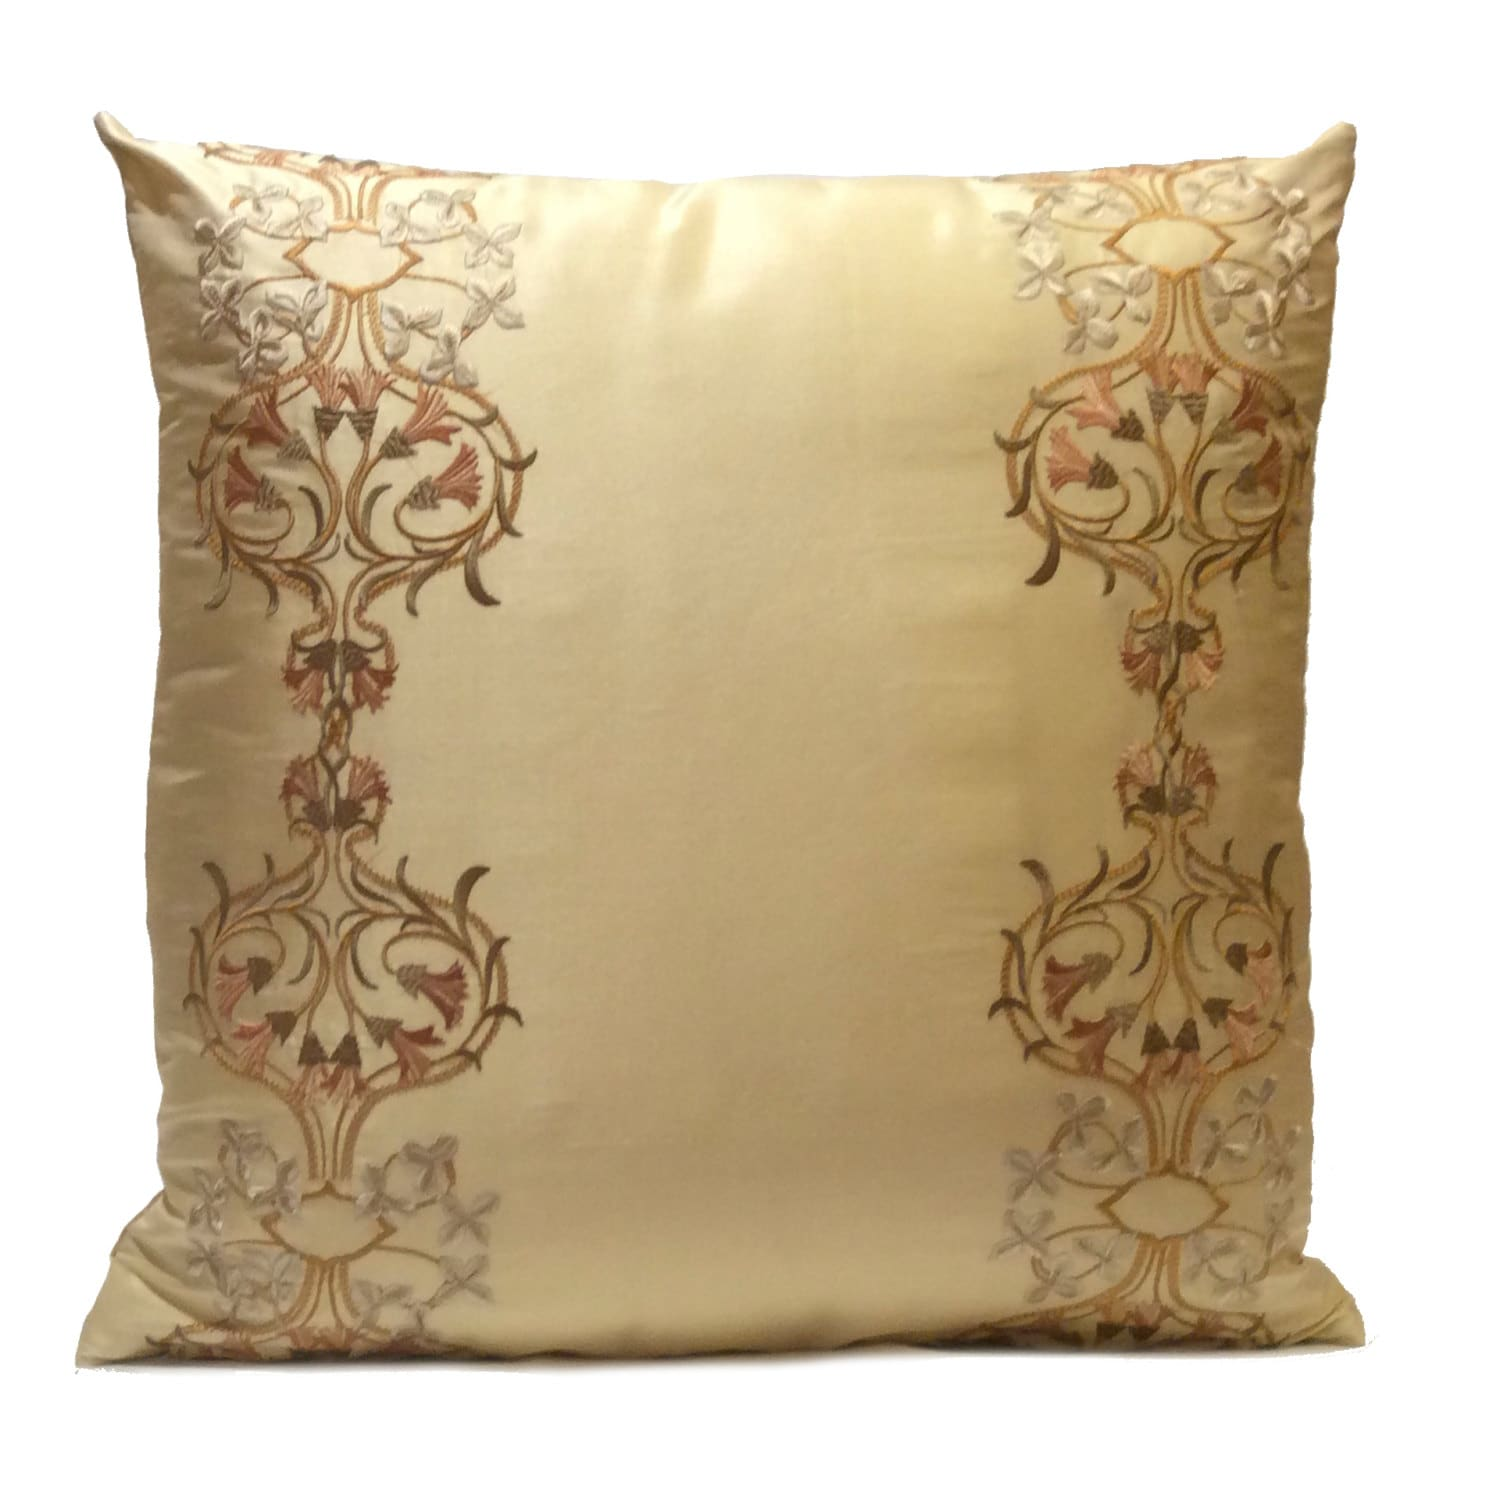 Beige gold pillow throw pillow cover decorative pillow for Beige and gold pillows